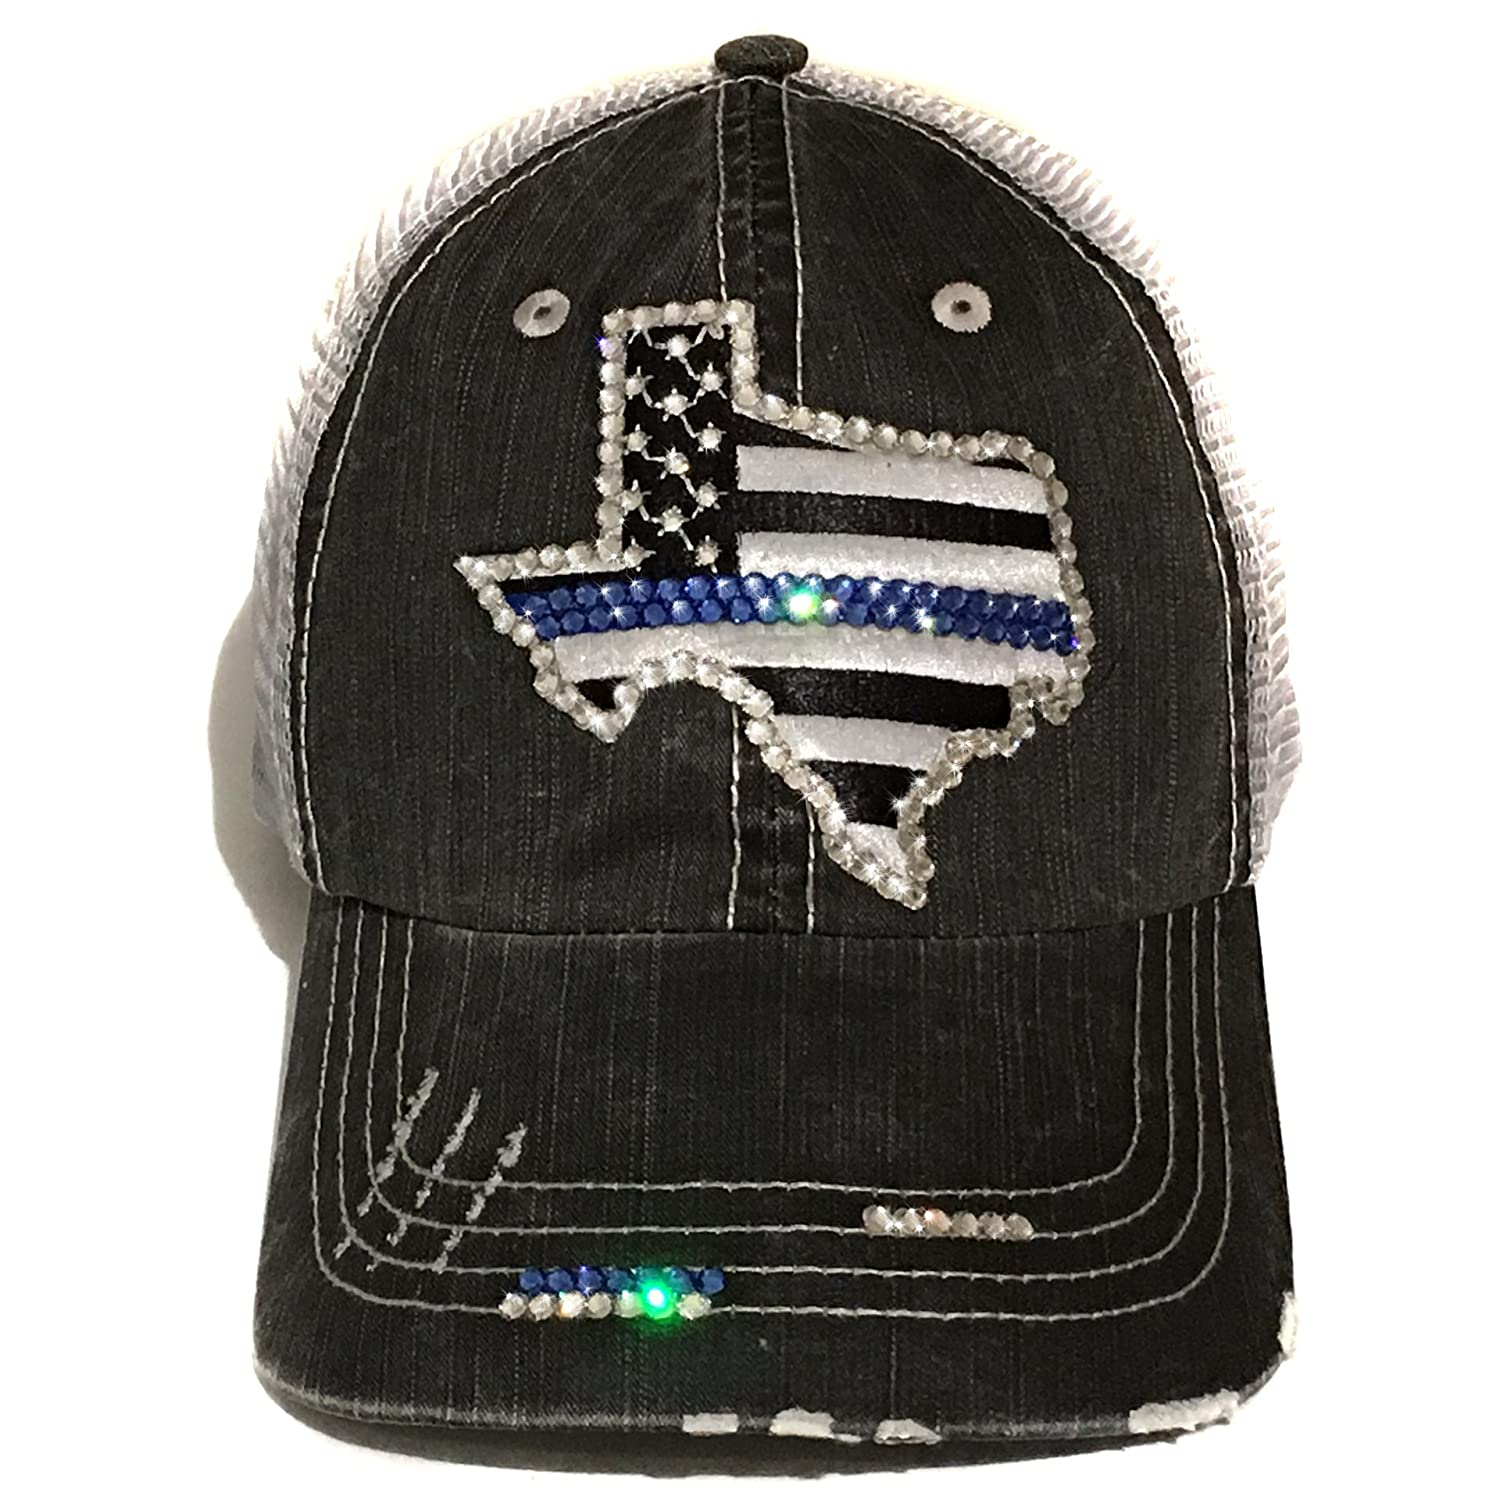 63ce5f0da37 Elivata Womens Texas Thin Blue Line Fitted Baseball Cap Swarovski Crystals  by at Amazon Women s Clothing store